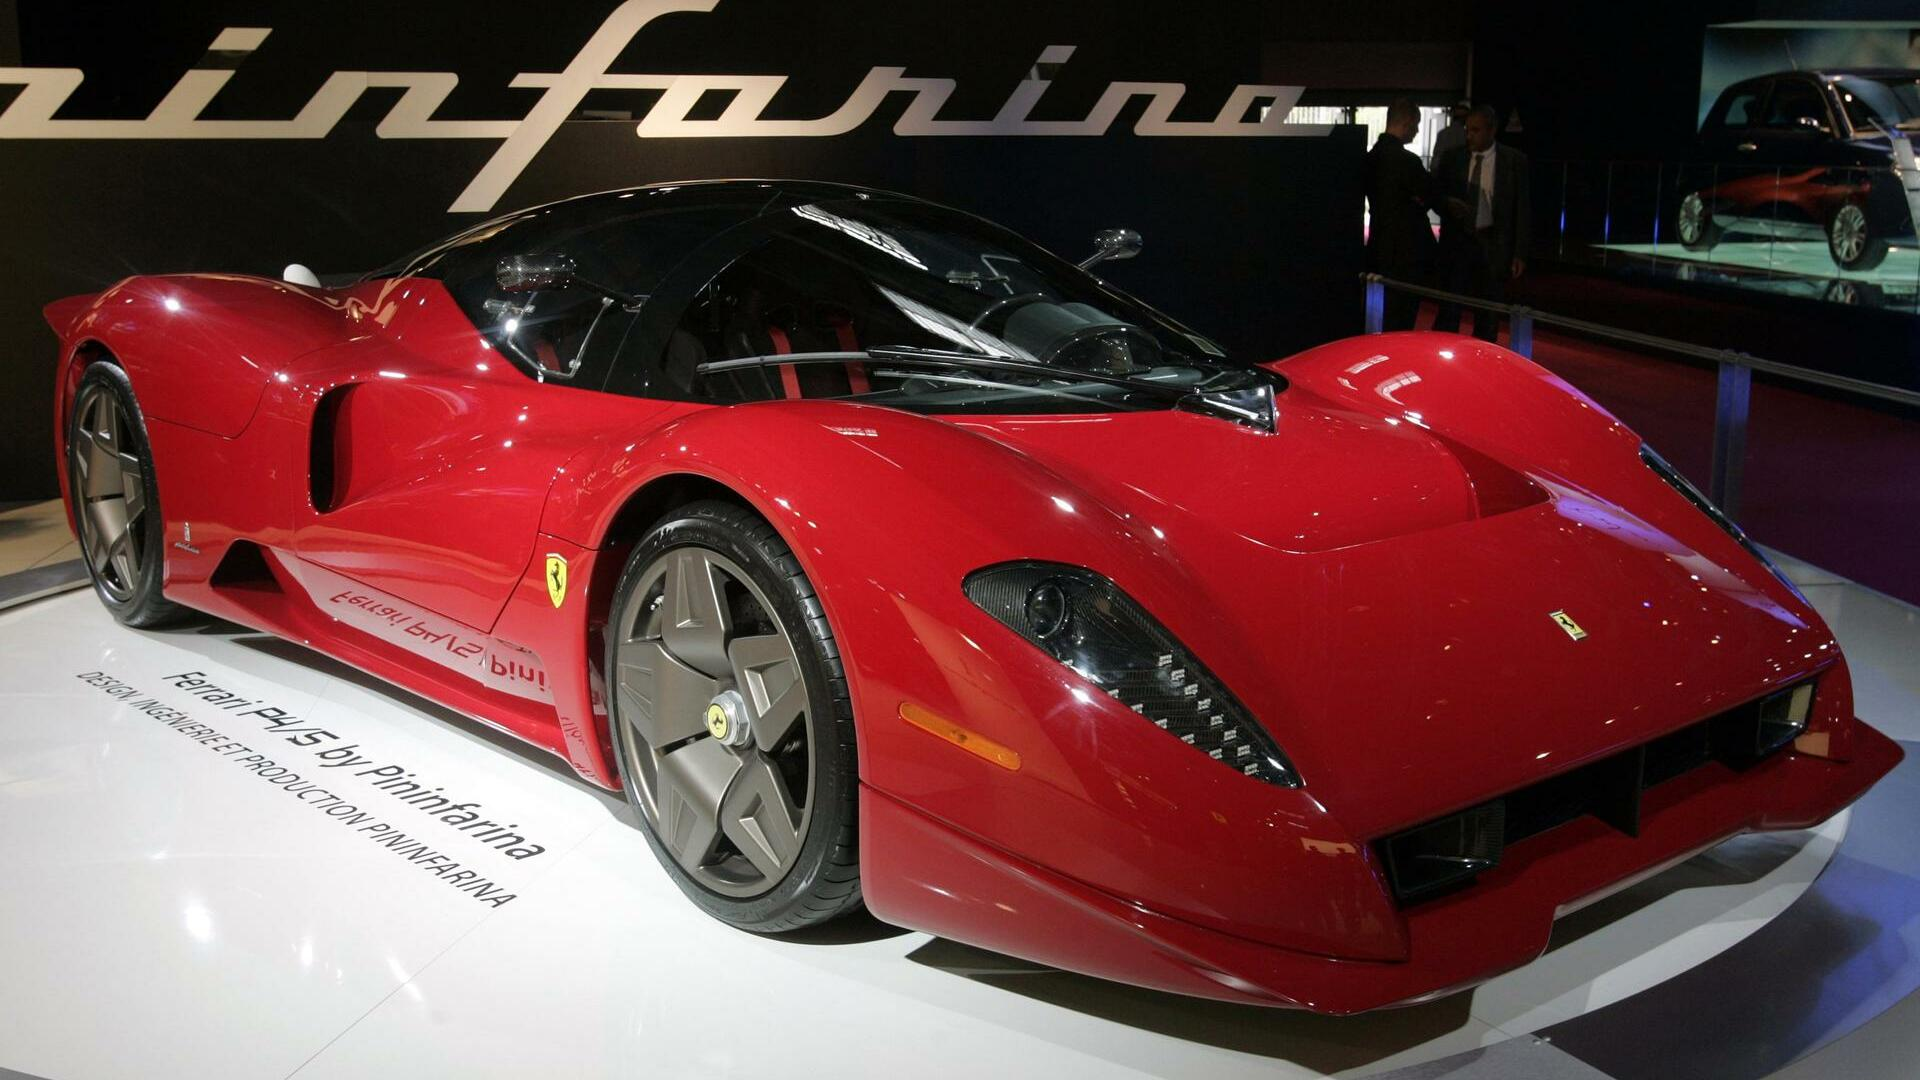 A Ferrari P4/5, designed by Pininfarina Quelle: REUTERS